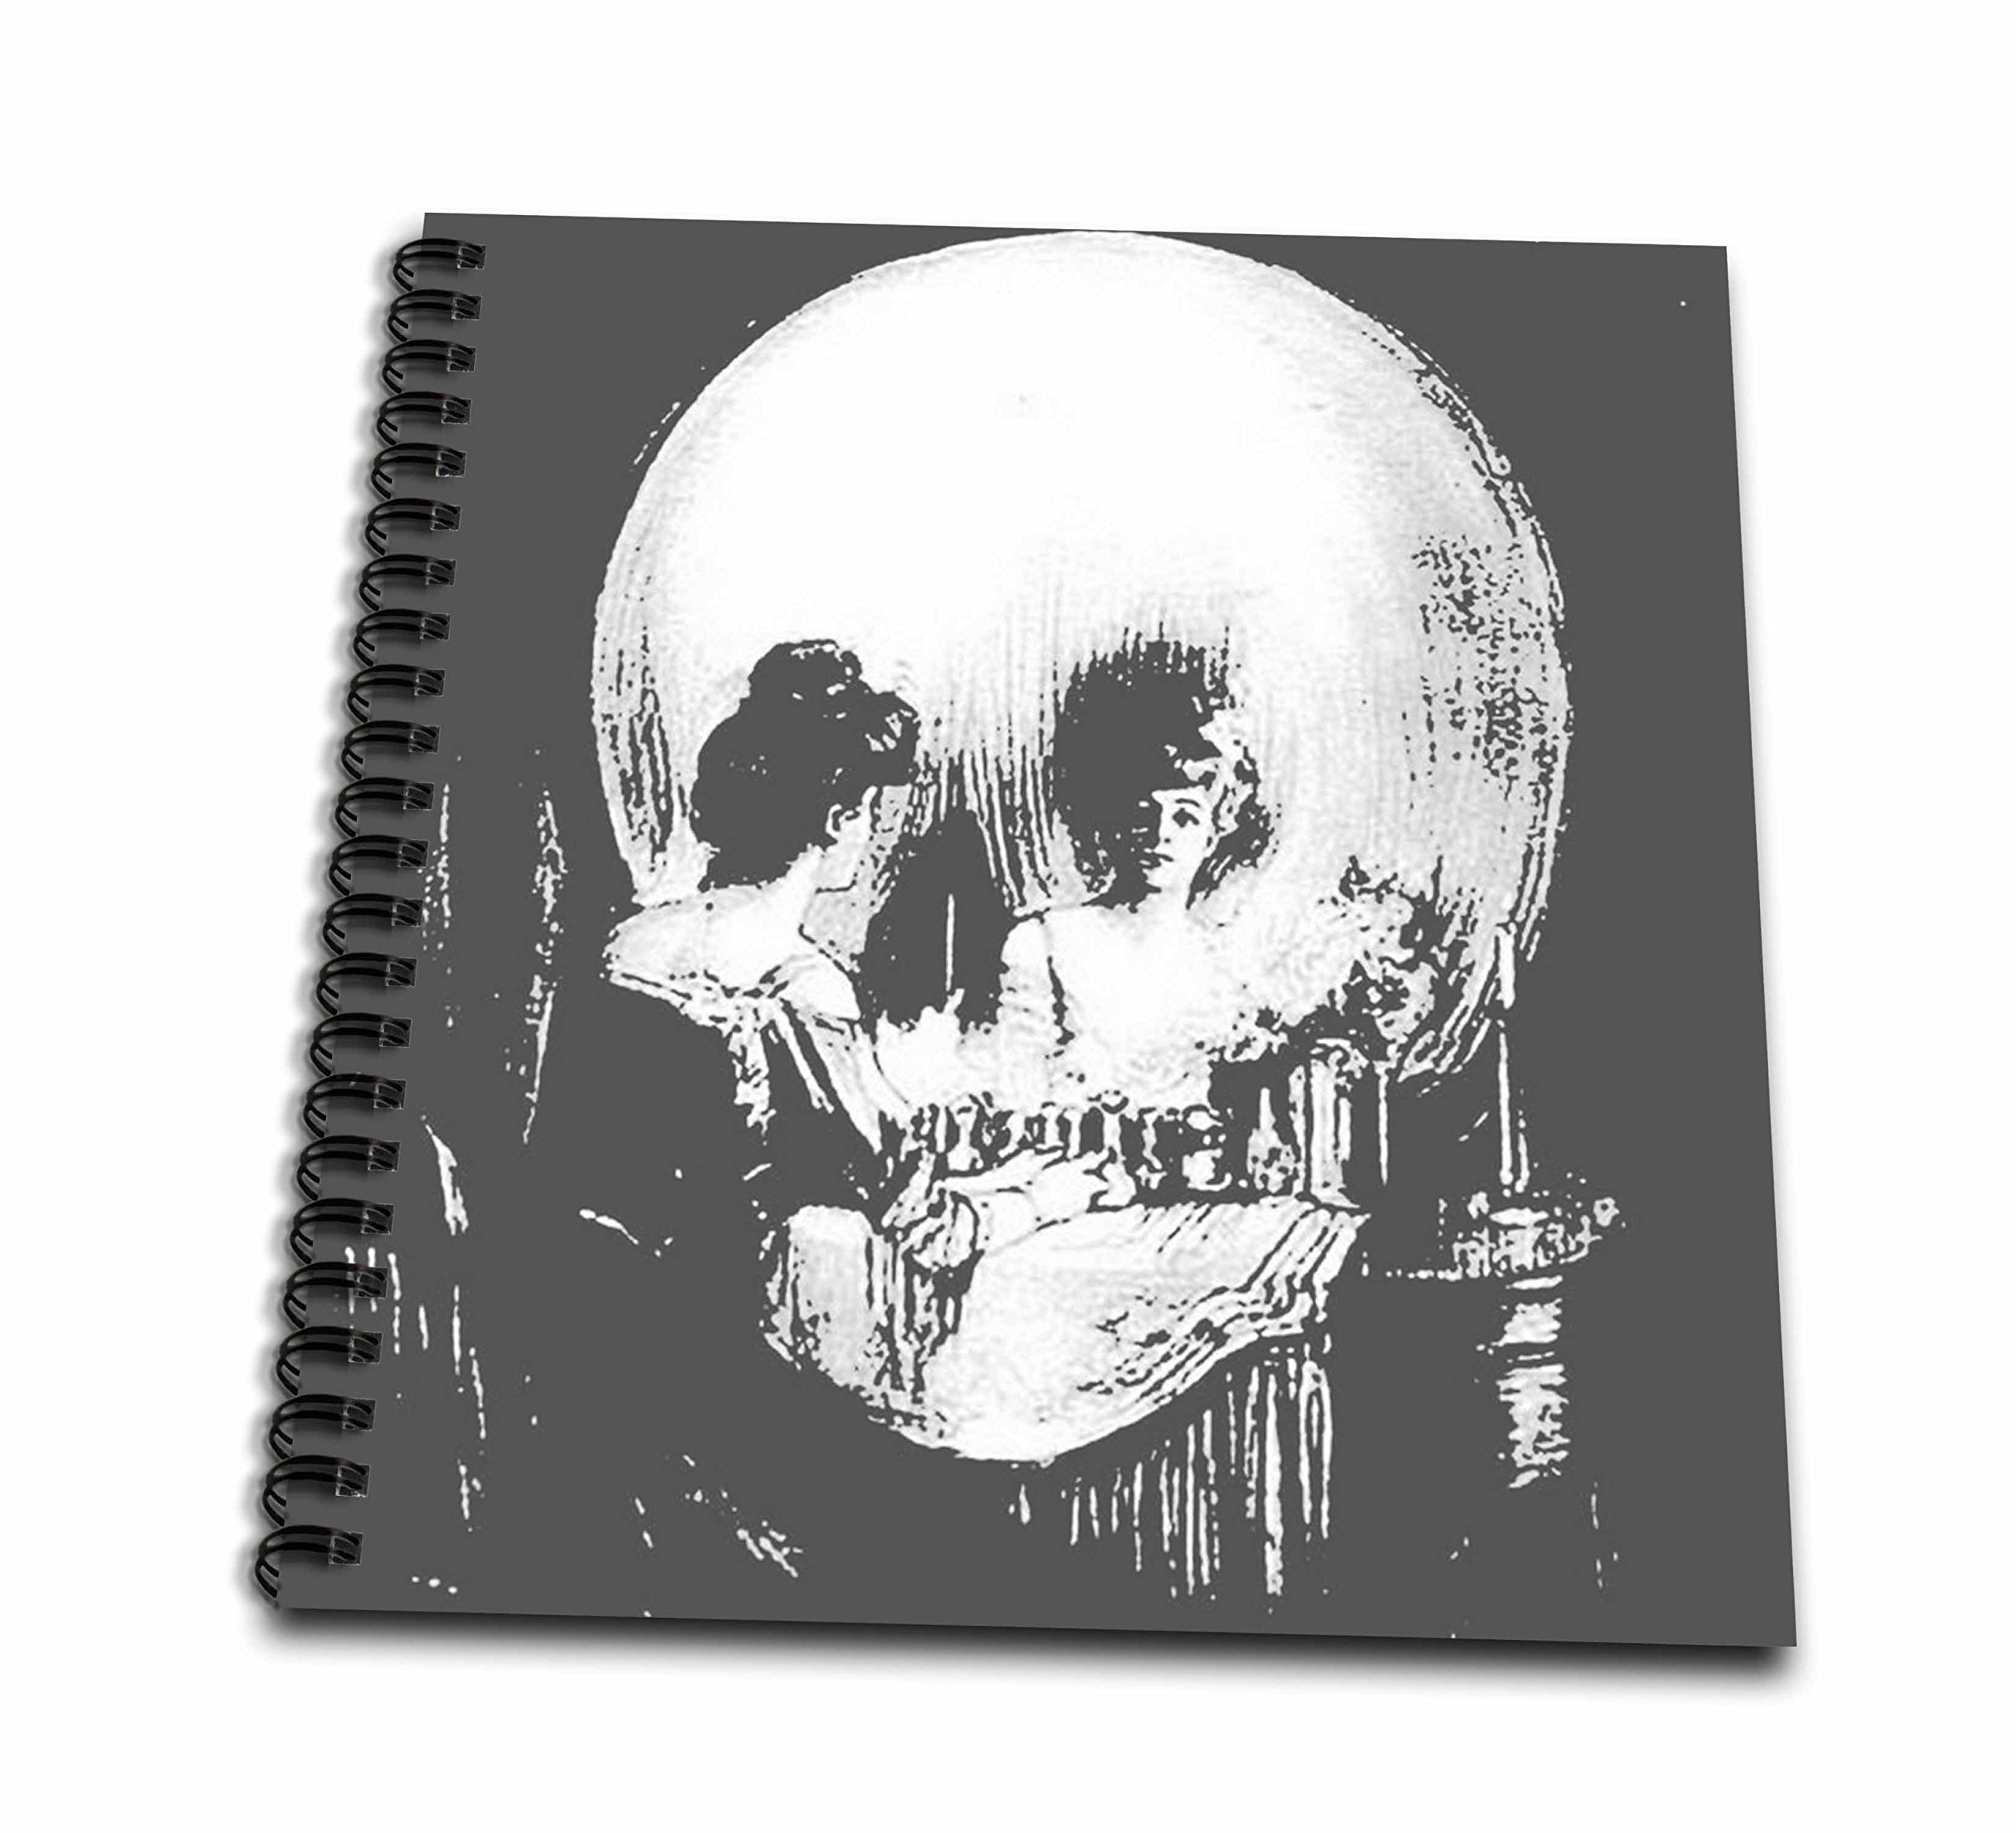 3drose db_46711_1 all is vanity ghost halloween optical illusion paranormal seasonal silhouette skeleton drawing book 8 by 8 inch